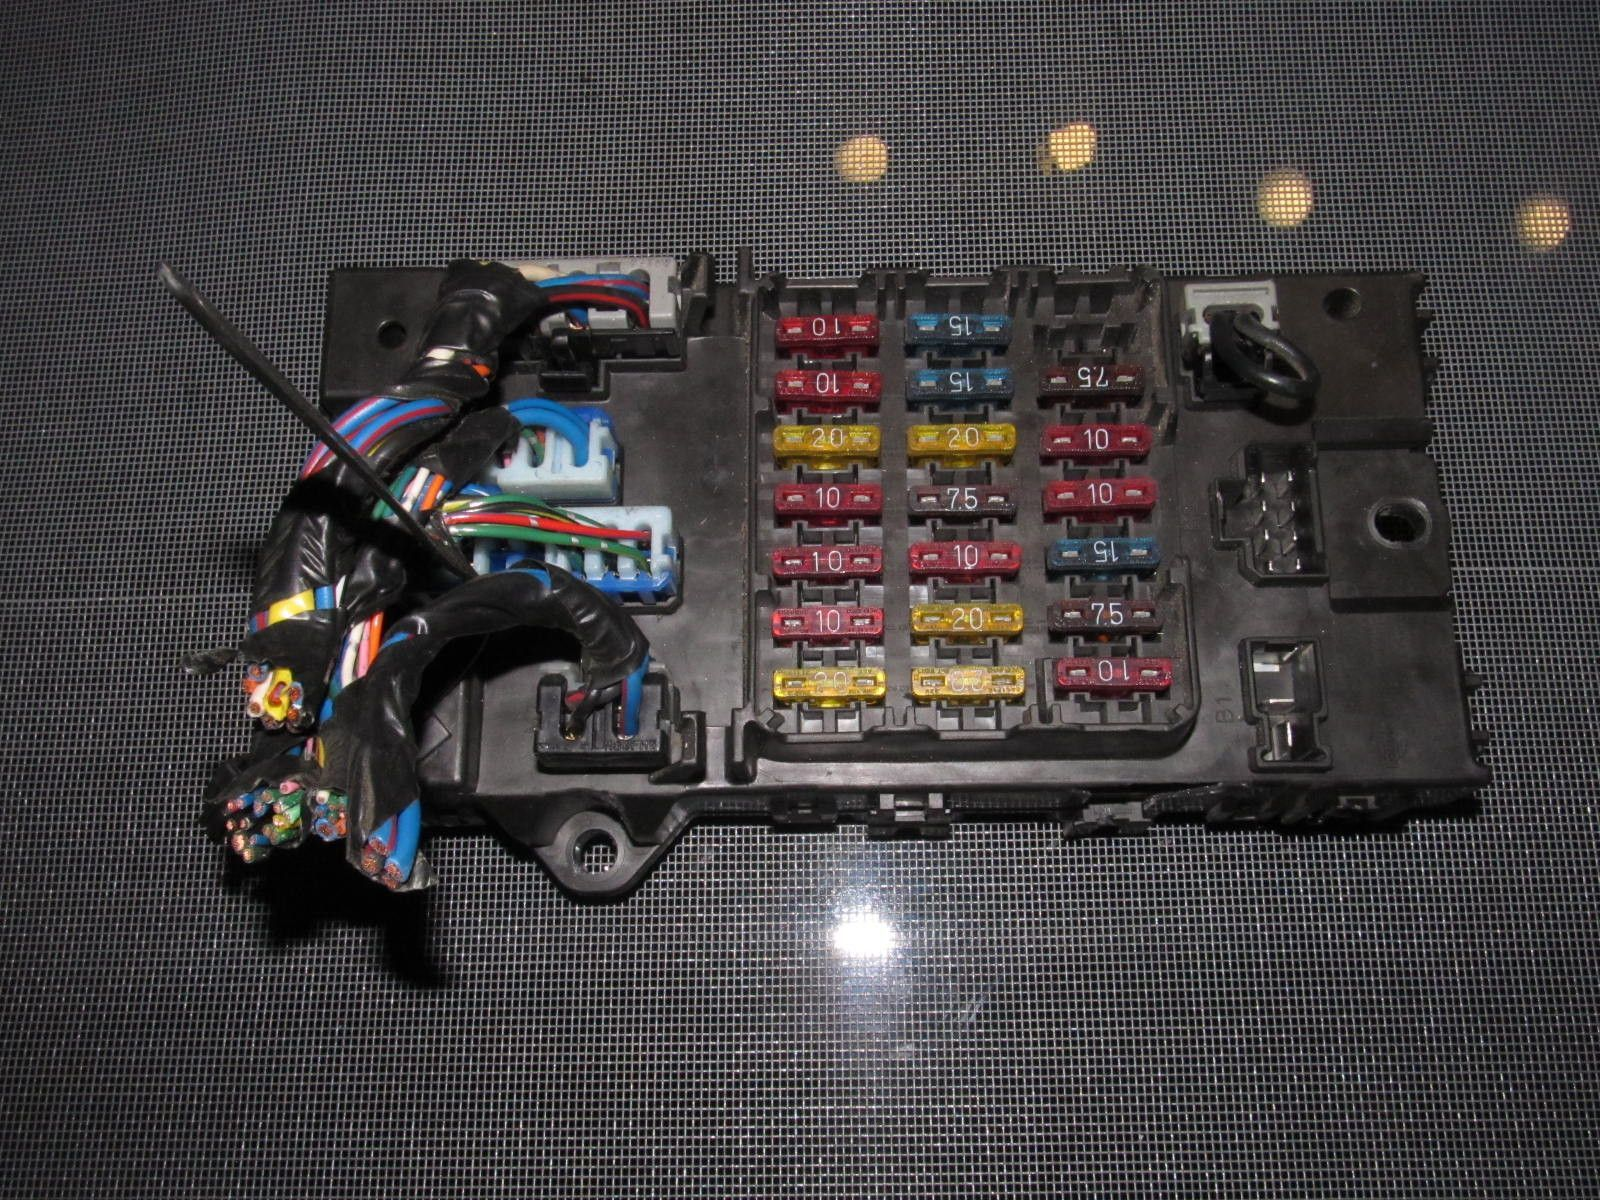 90 96 300zx interior fuse box relay panel dash 90-96 nissan 300zx oem interior fuse box | autopartone.com ... #1